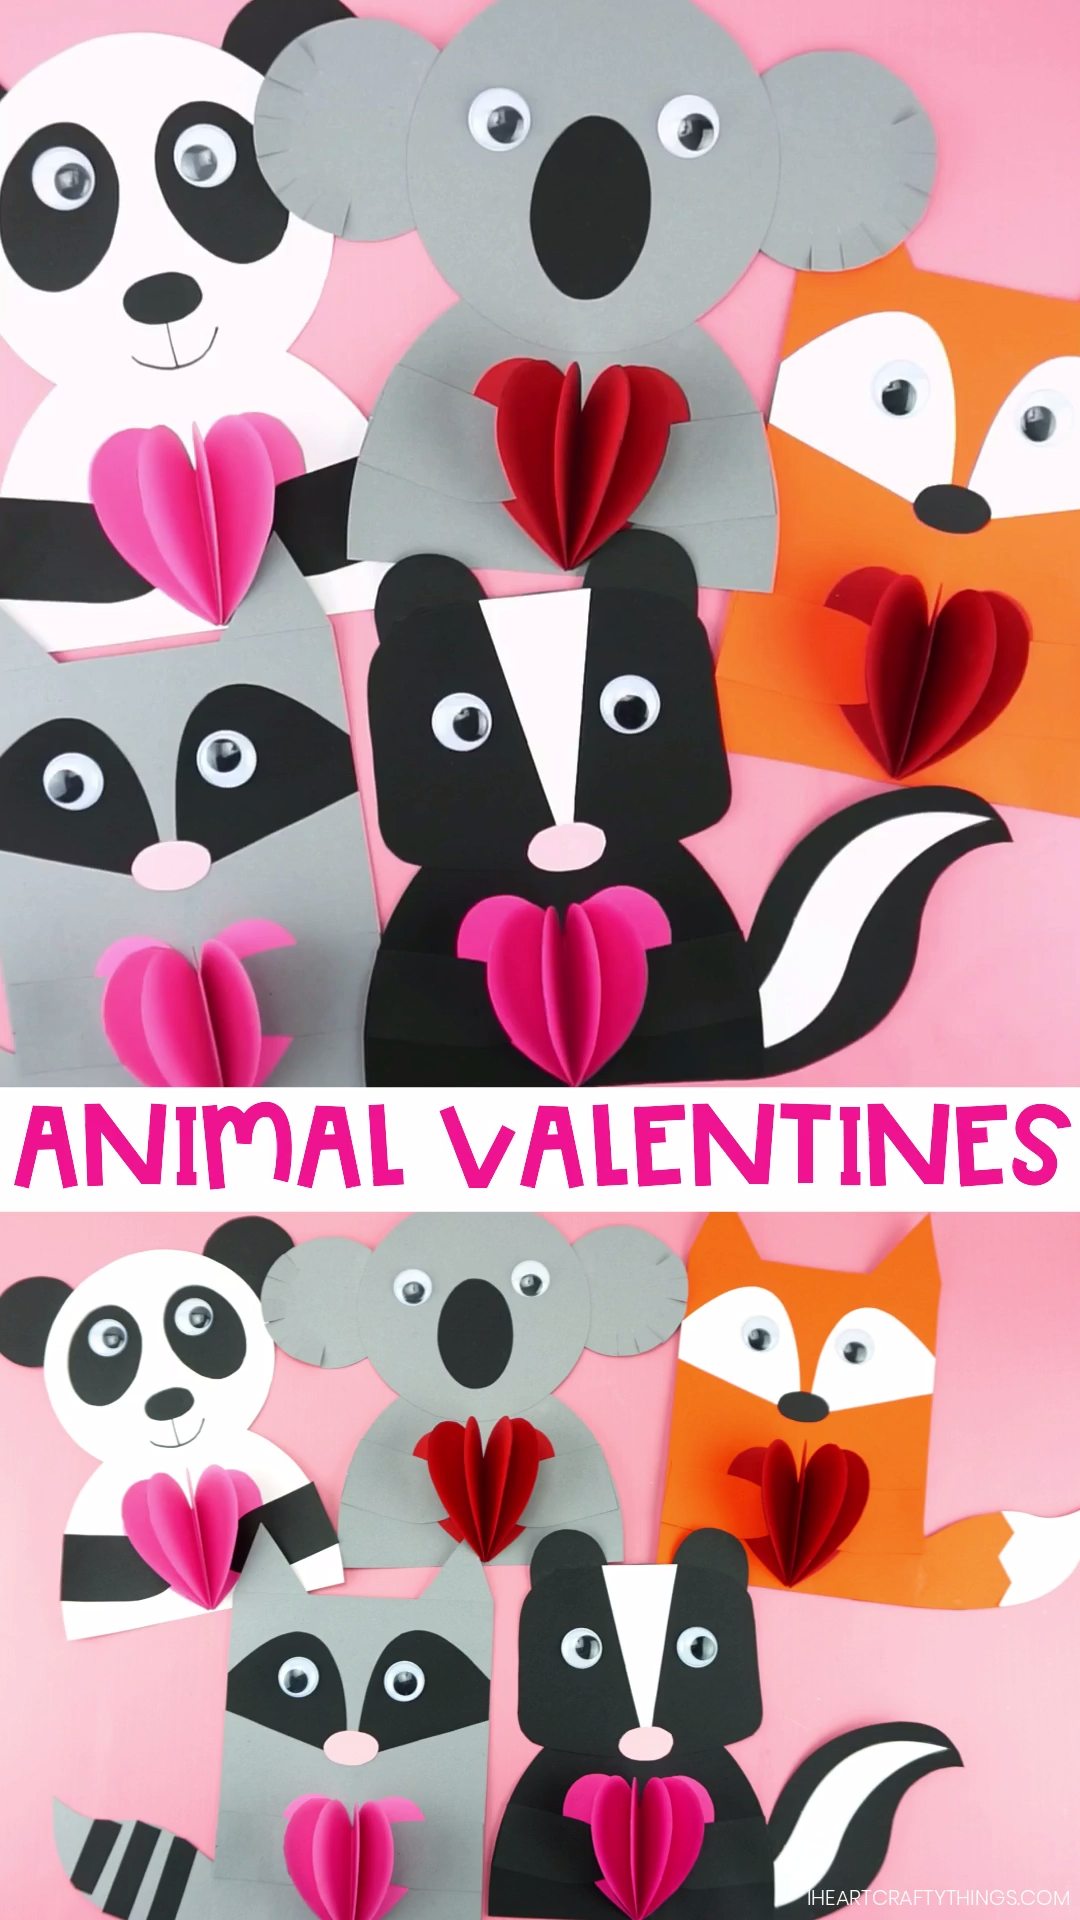 Photo of Adorable Valentine Animal Crafts for Kids -Koala, Panda, Skunk, Fox and Raccoon